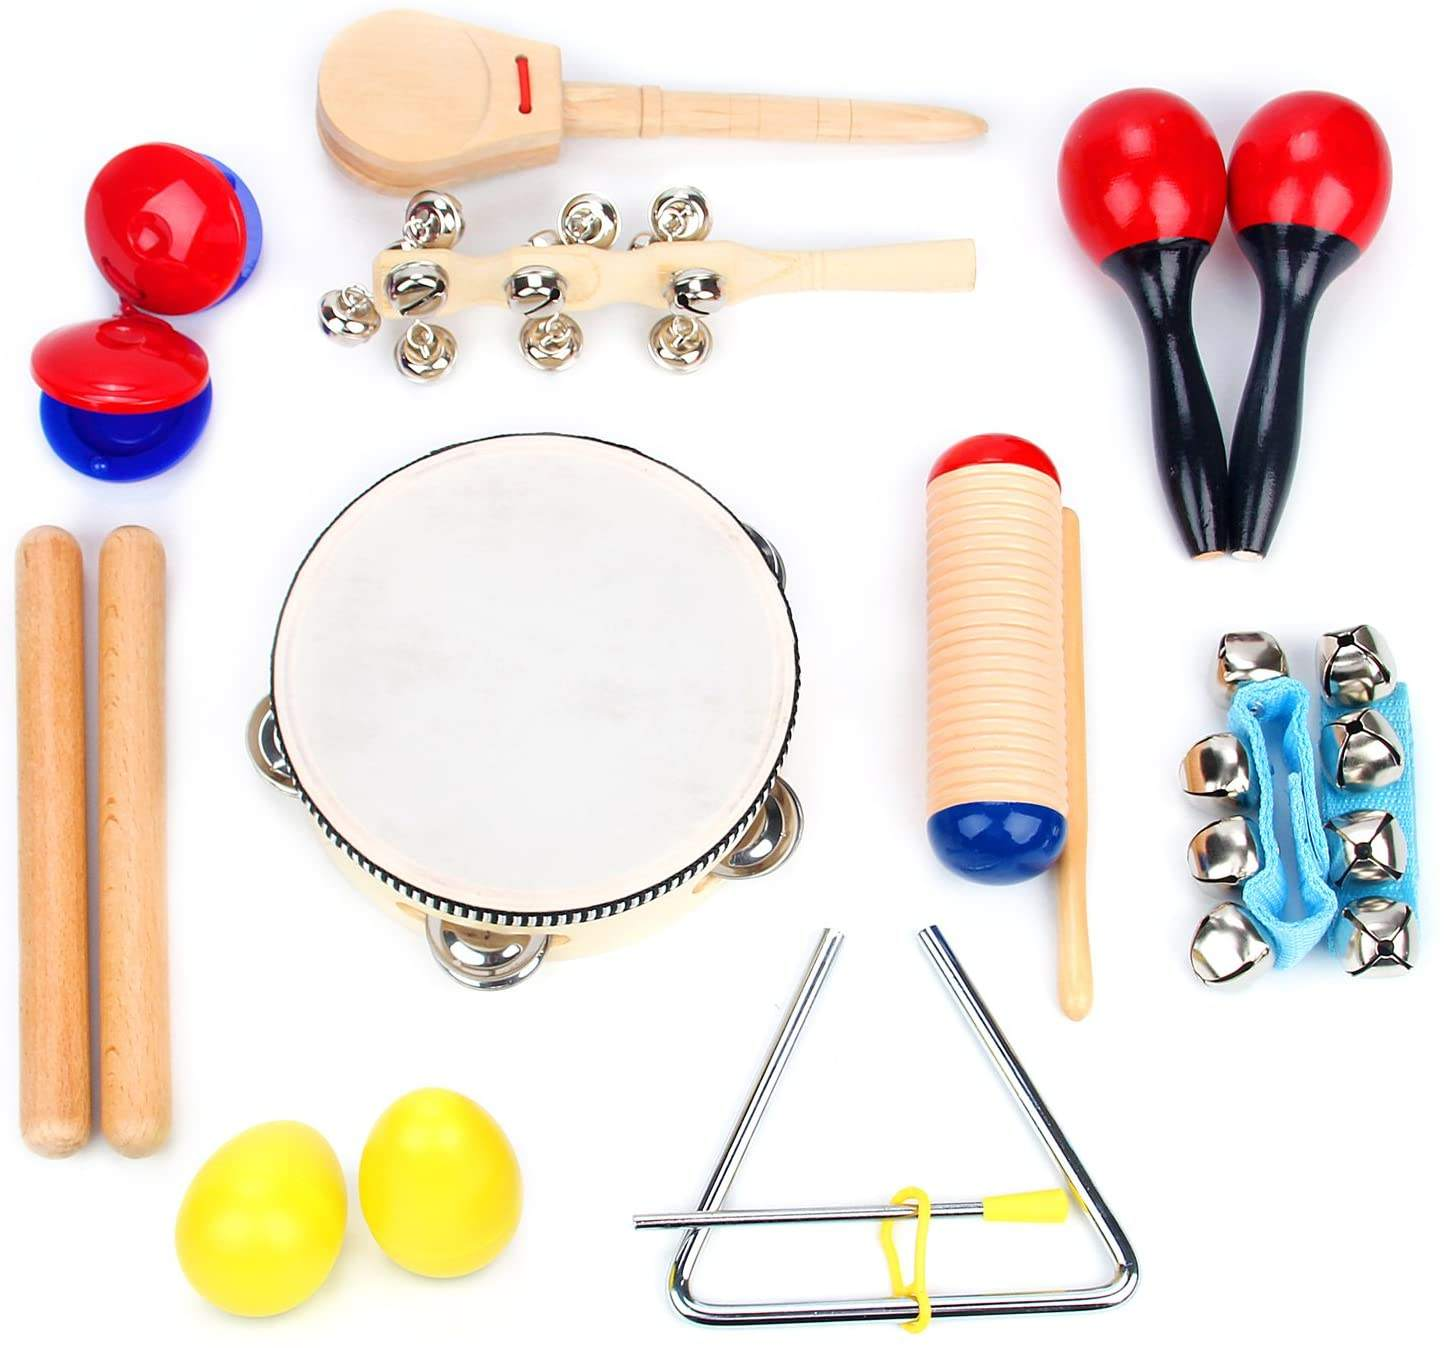 Toddler Educational & Musical Percussion for Kids & Children Instruments Set With Tambourine, Maracas